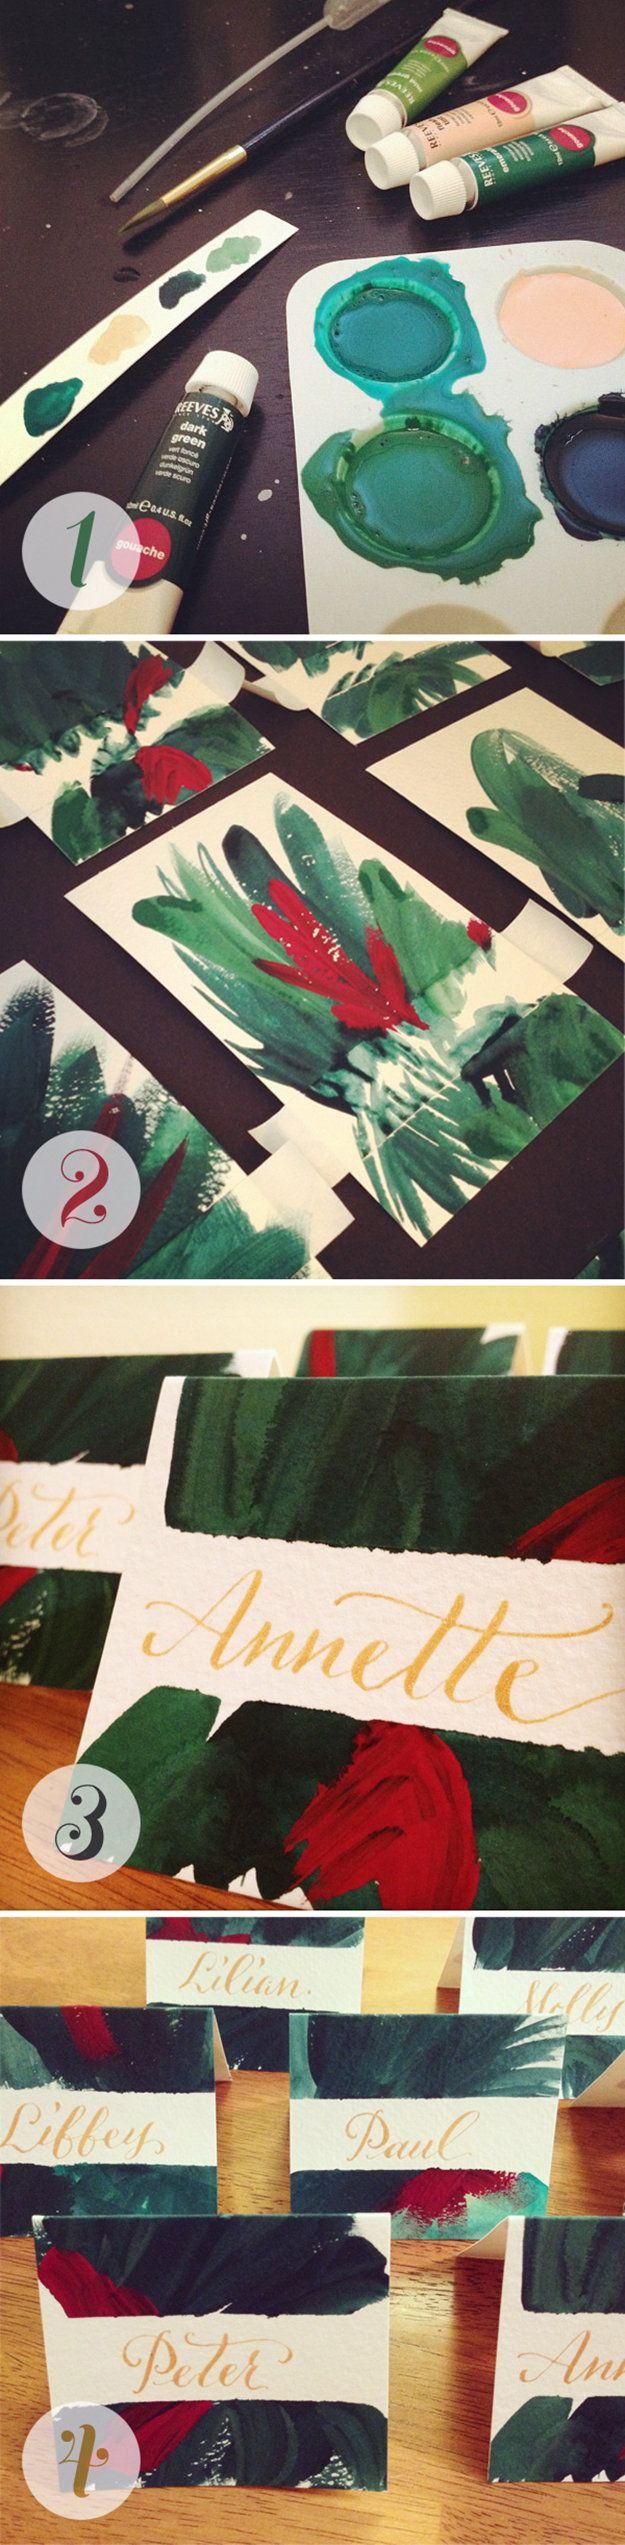 Christmas Cards! Hand-painted Christmas Card Inspiration | http://diyready.com/22-handmade-calligraphy-christmas-cards-diy-christmas-cards/